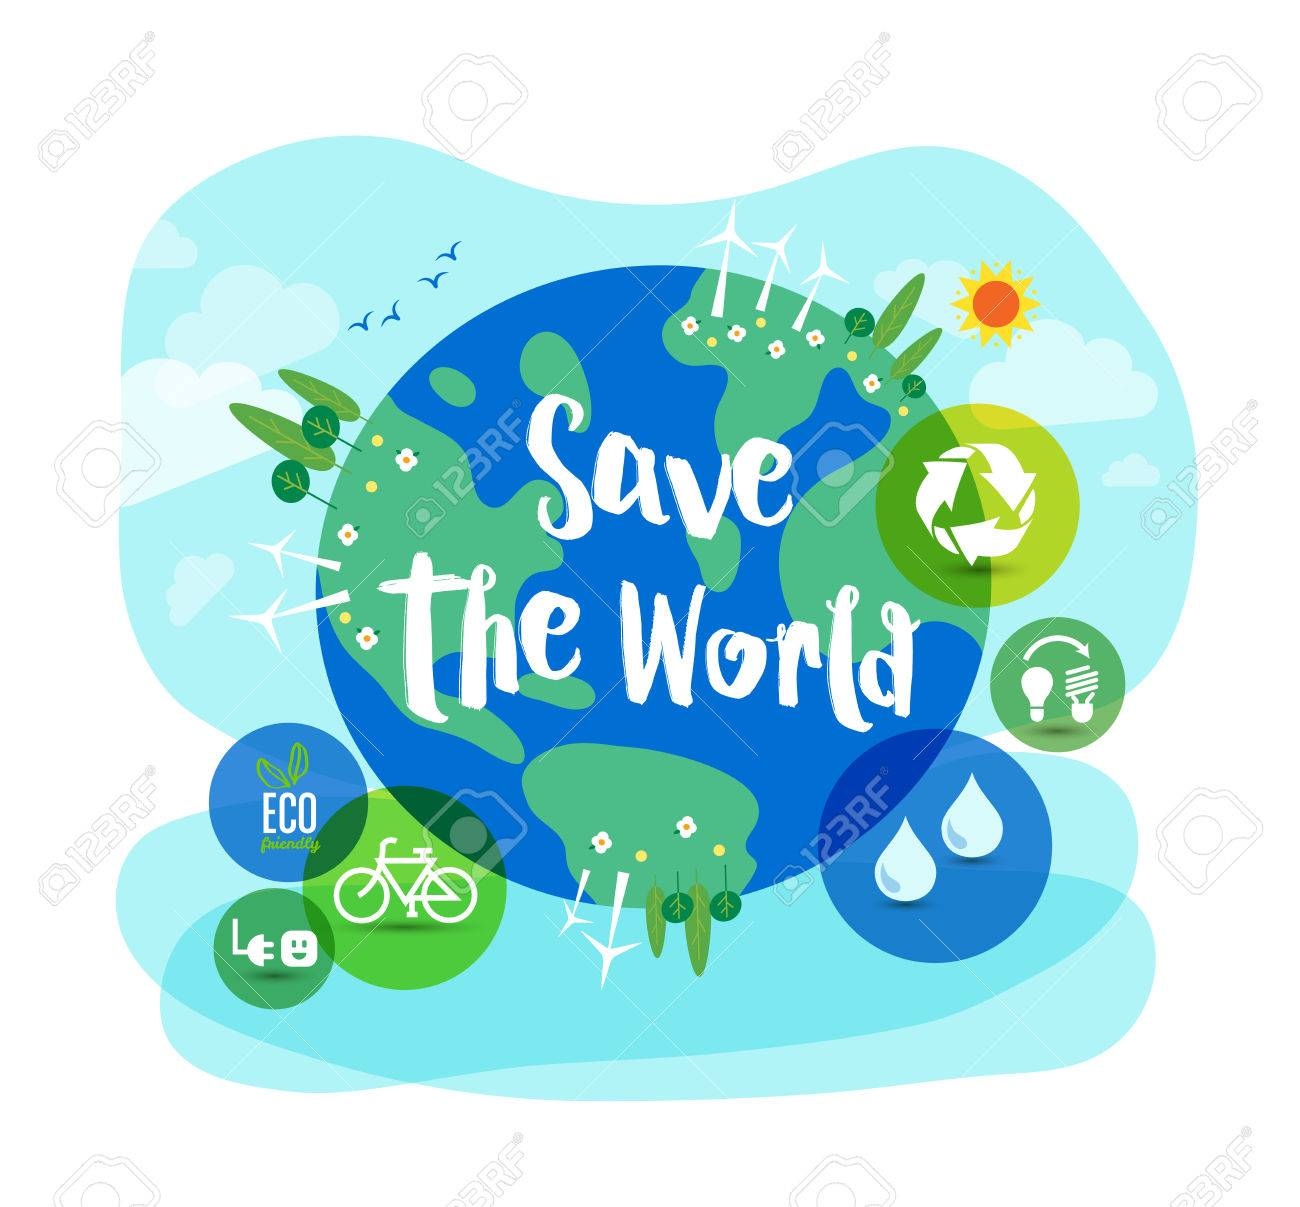 Nice Save The World Sustainable Development Ecology Concept Illustration Stock  Vector   56887933